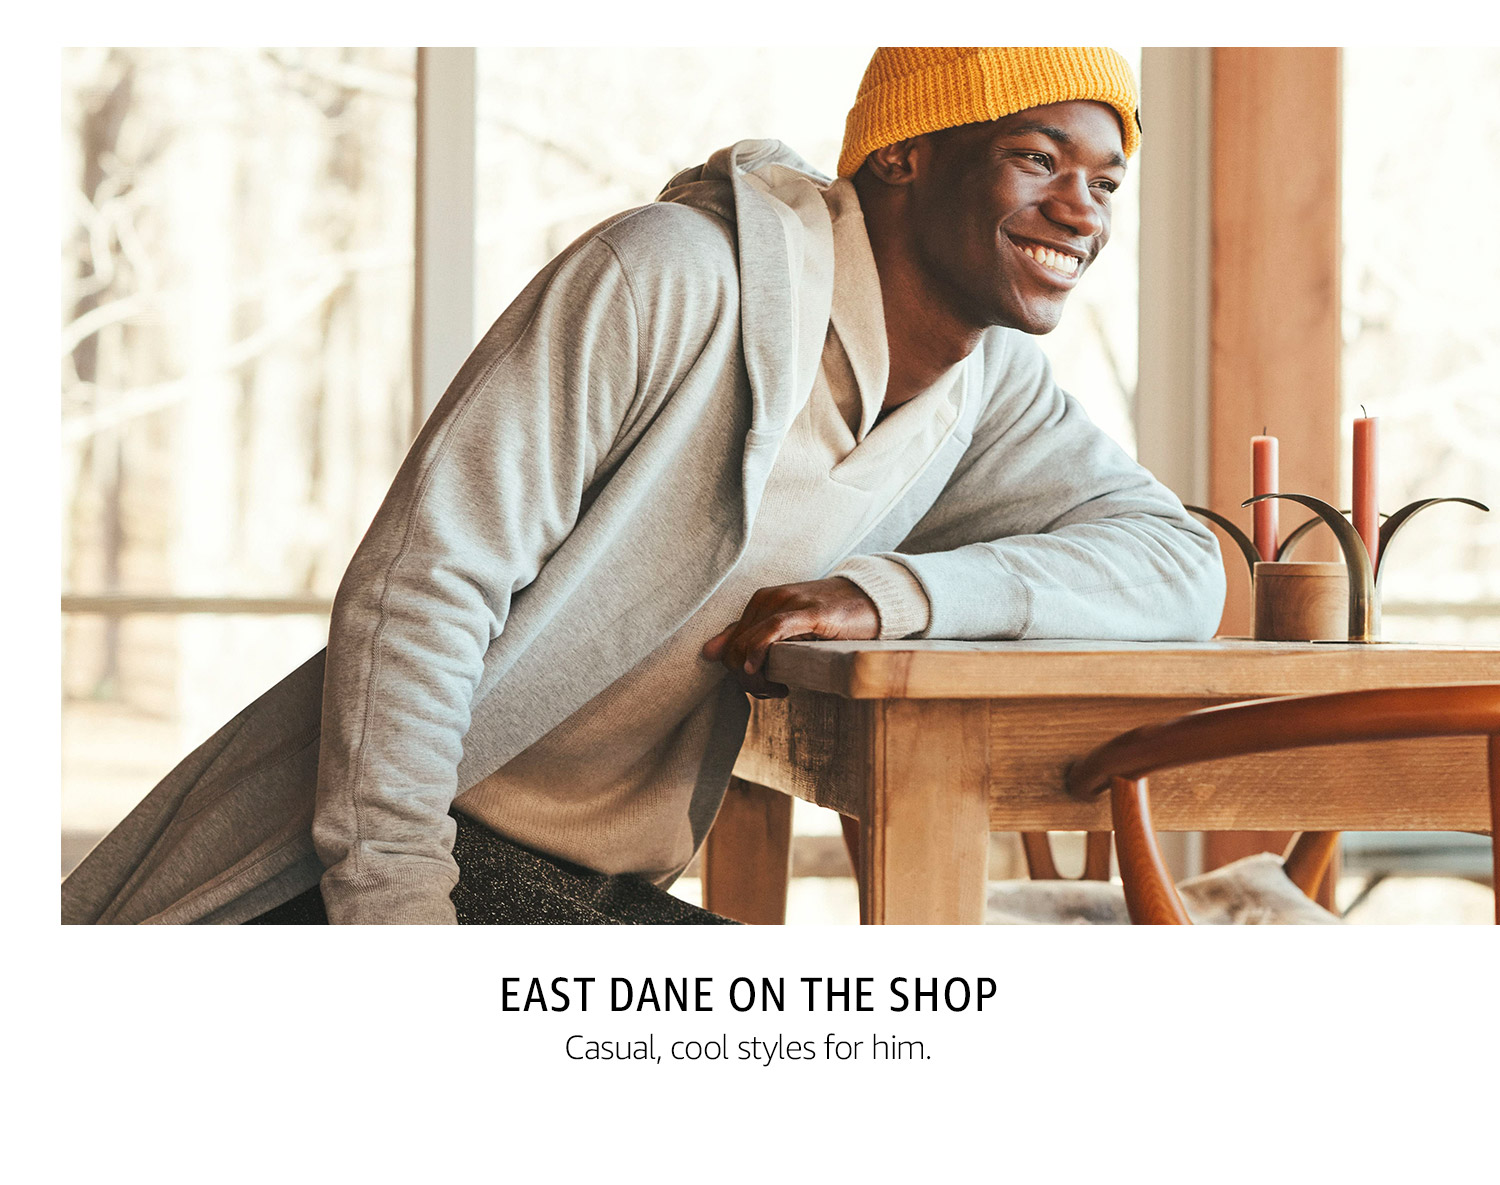 East Dane on the Shop